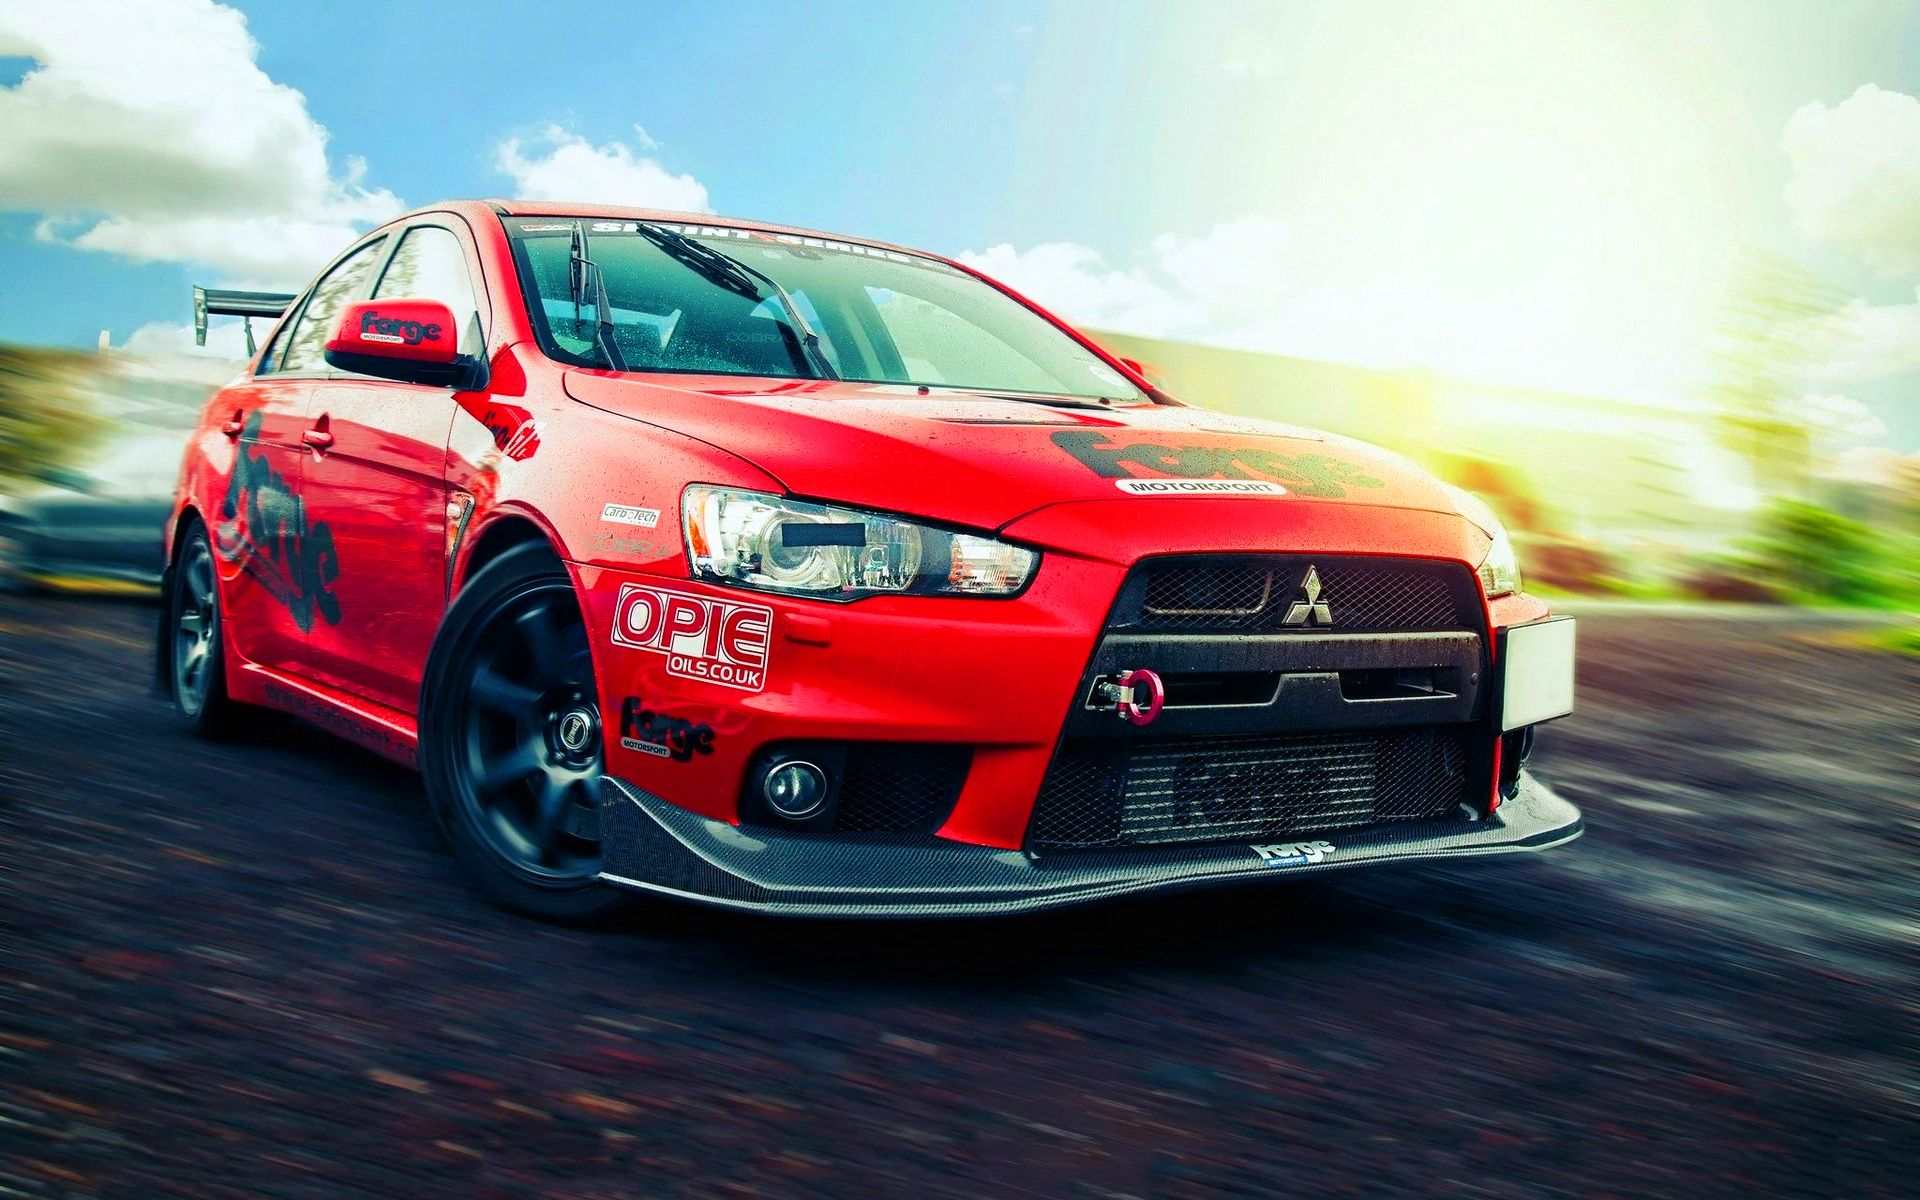 mitsubishi lancer evolution x red cars hd wallpapers pinterest mitsubishi lancer evolution. Black Bedroom Furniture Sets. Home Design Ideas